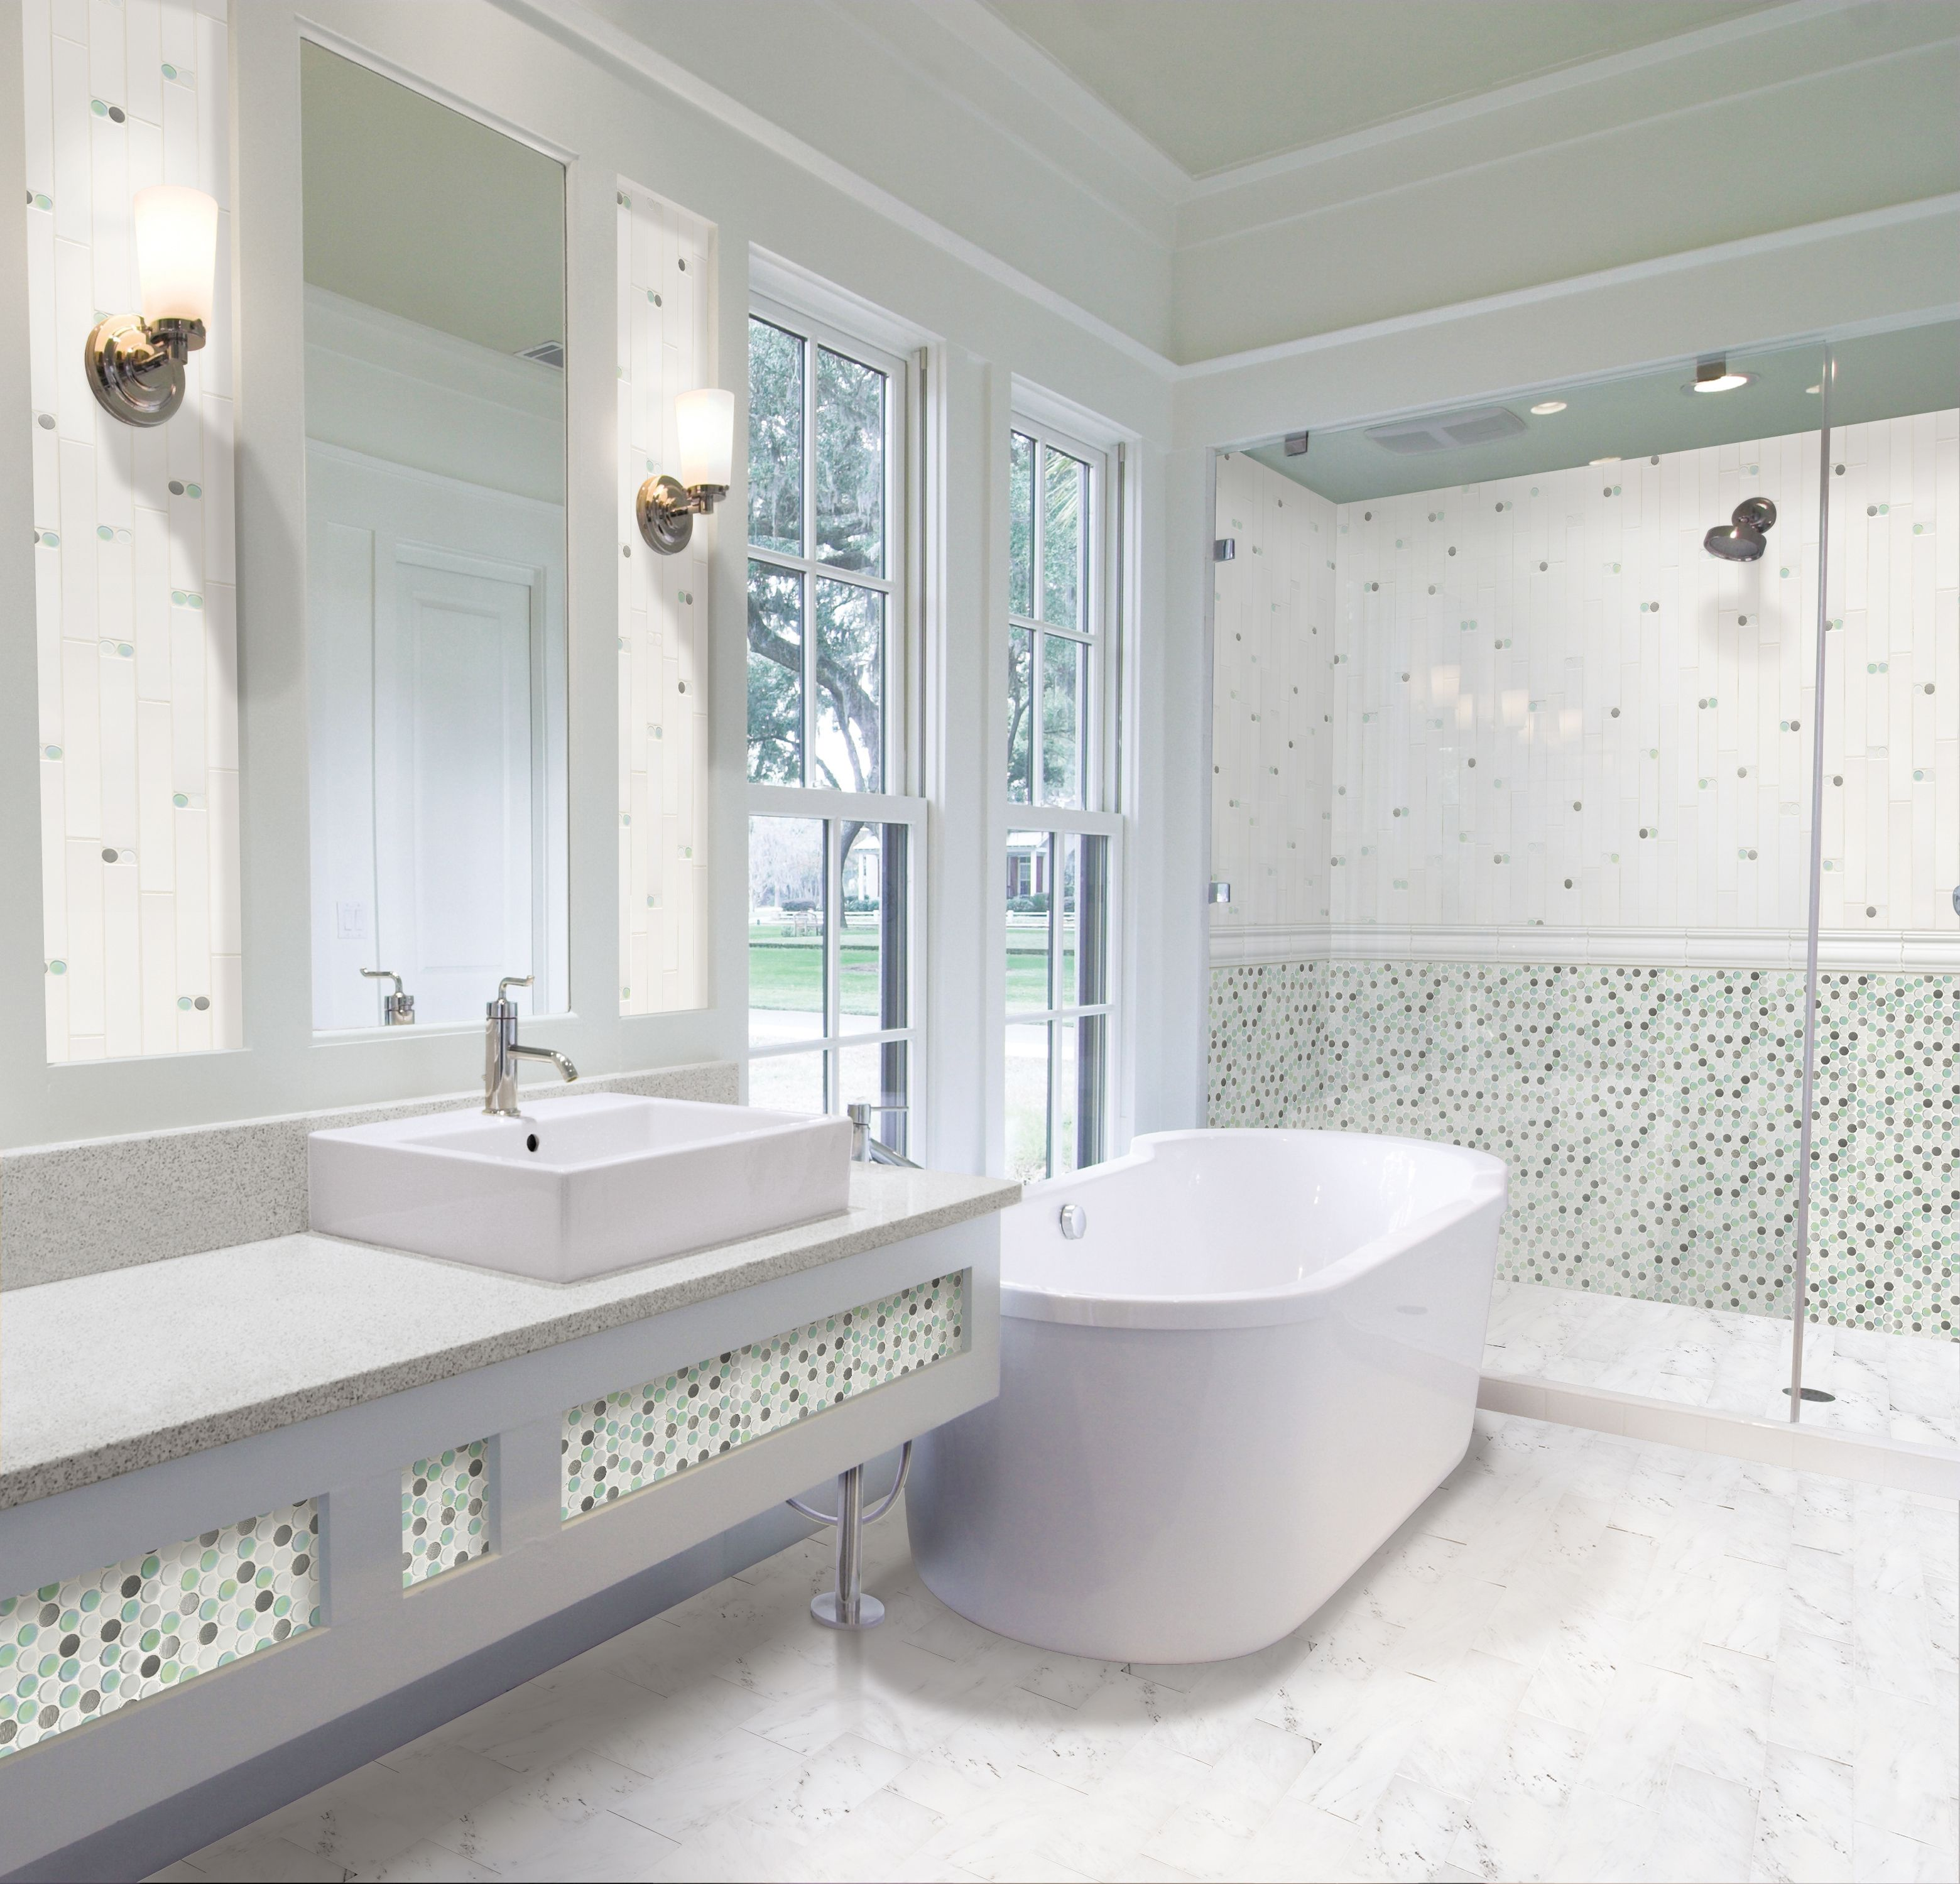 Tile Market & Design featured in several magazine ads --> Gorgeous ...